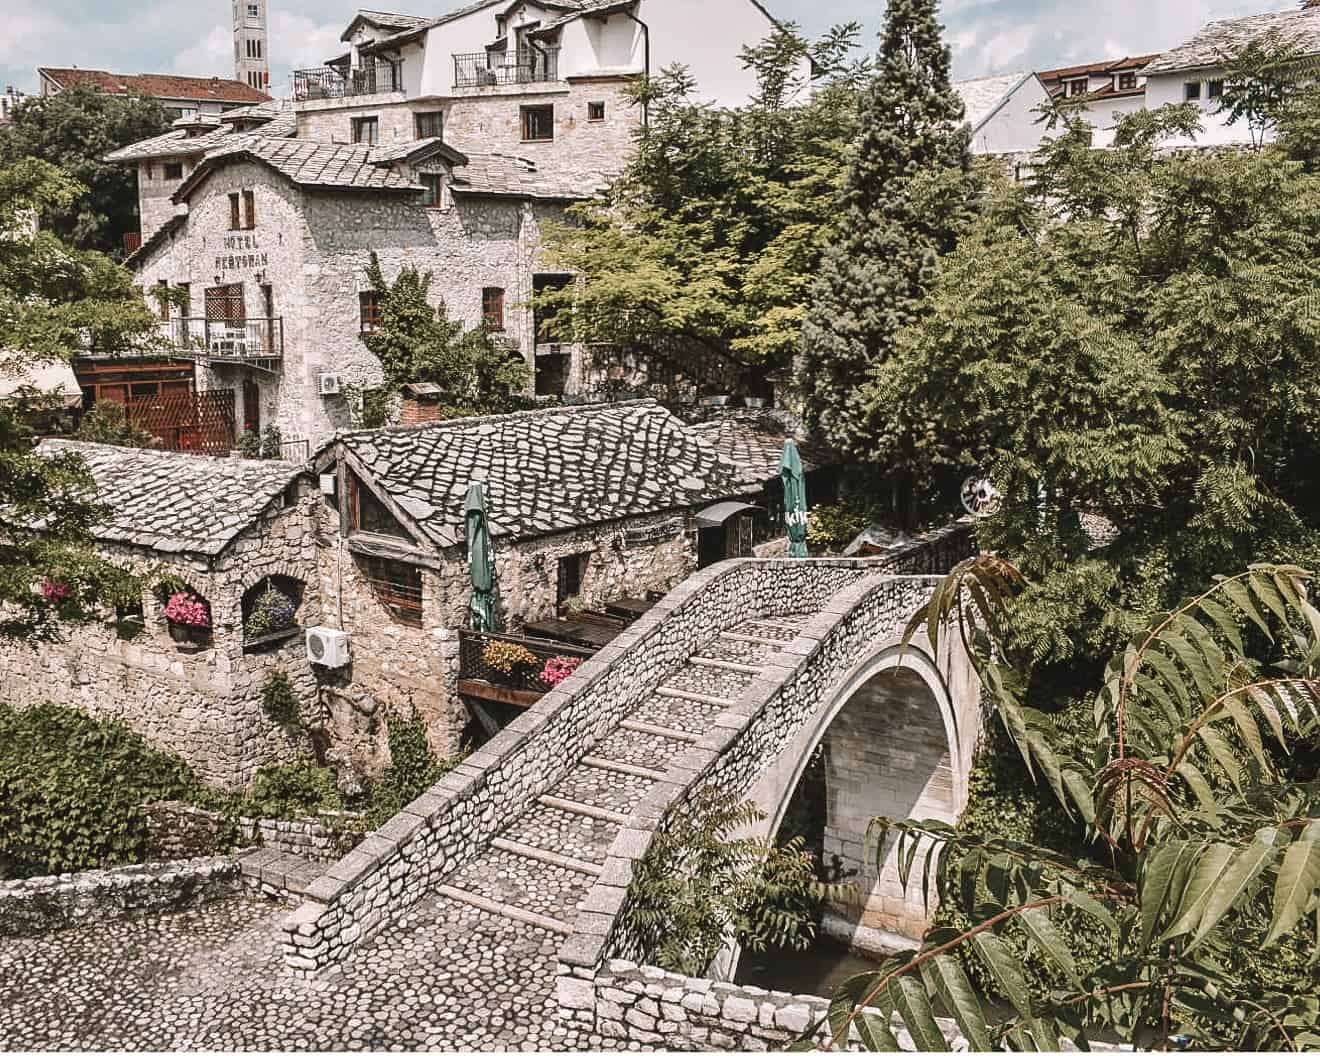 All you need is one day to be welcomed by the locals and discover the historic charm of Mostar. Here's why you should visit Mostar, Bosnia and Herzegovina. | #mostar #bosniaandherzegovina #balkantour #balkans